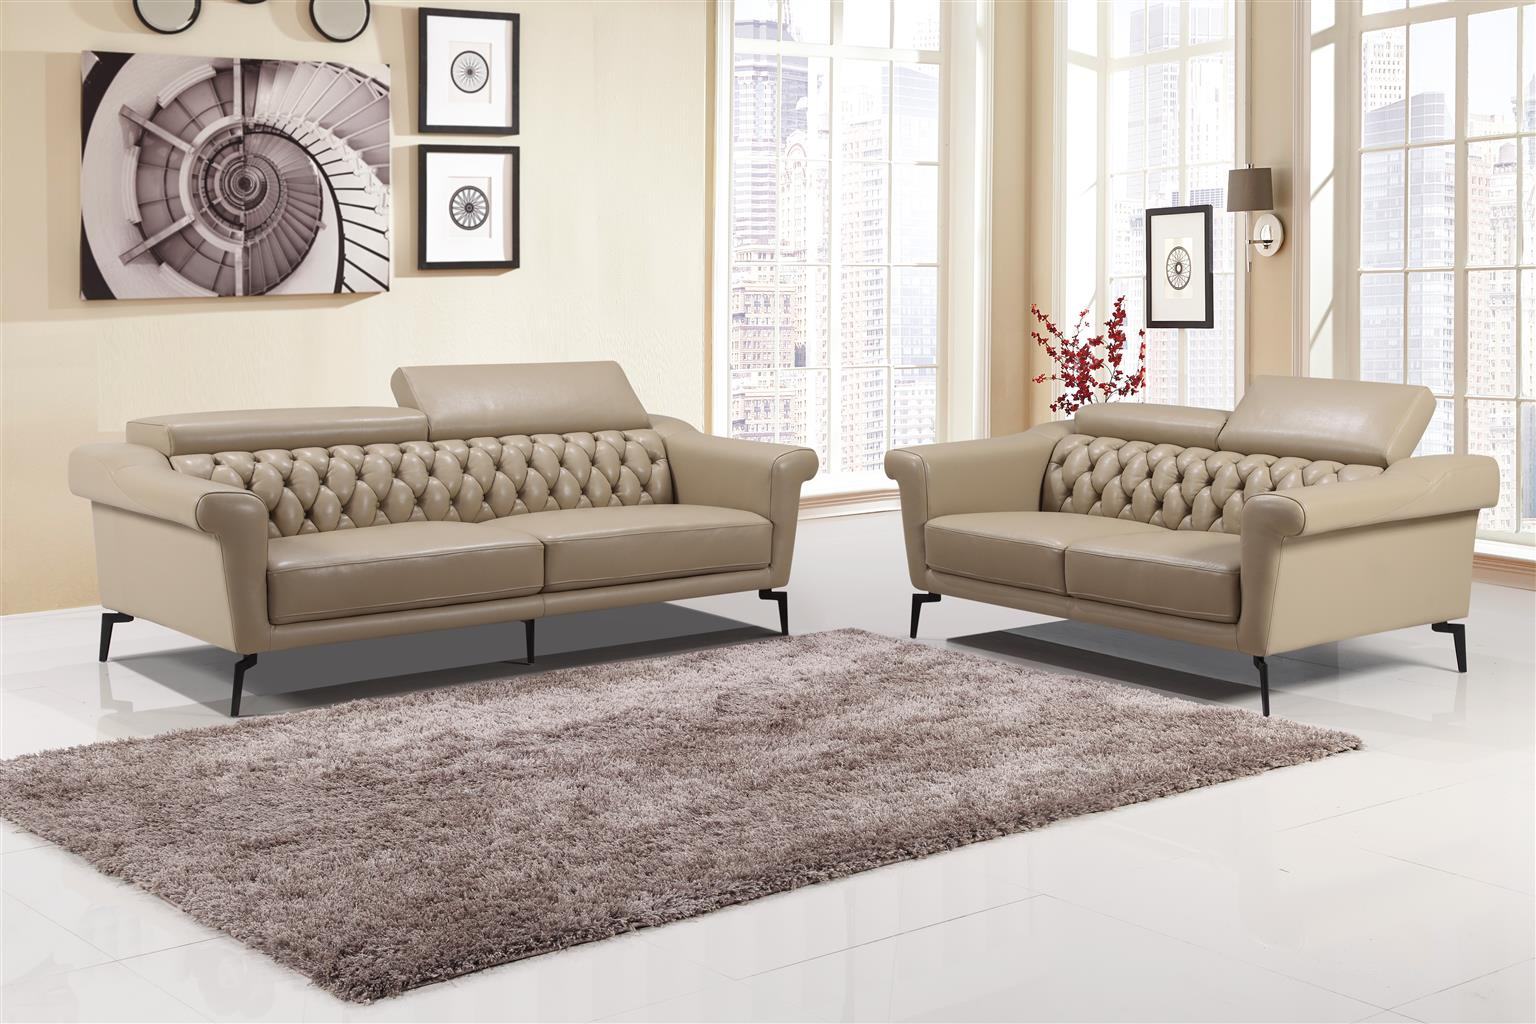 Chesterfield Lounge Suite Brand New For Only R 12 499